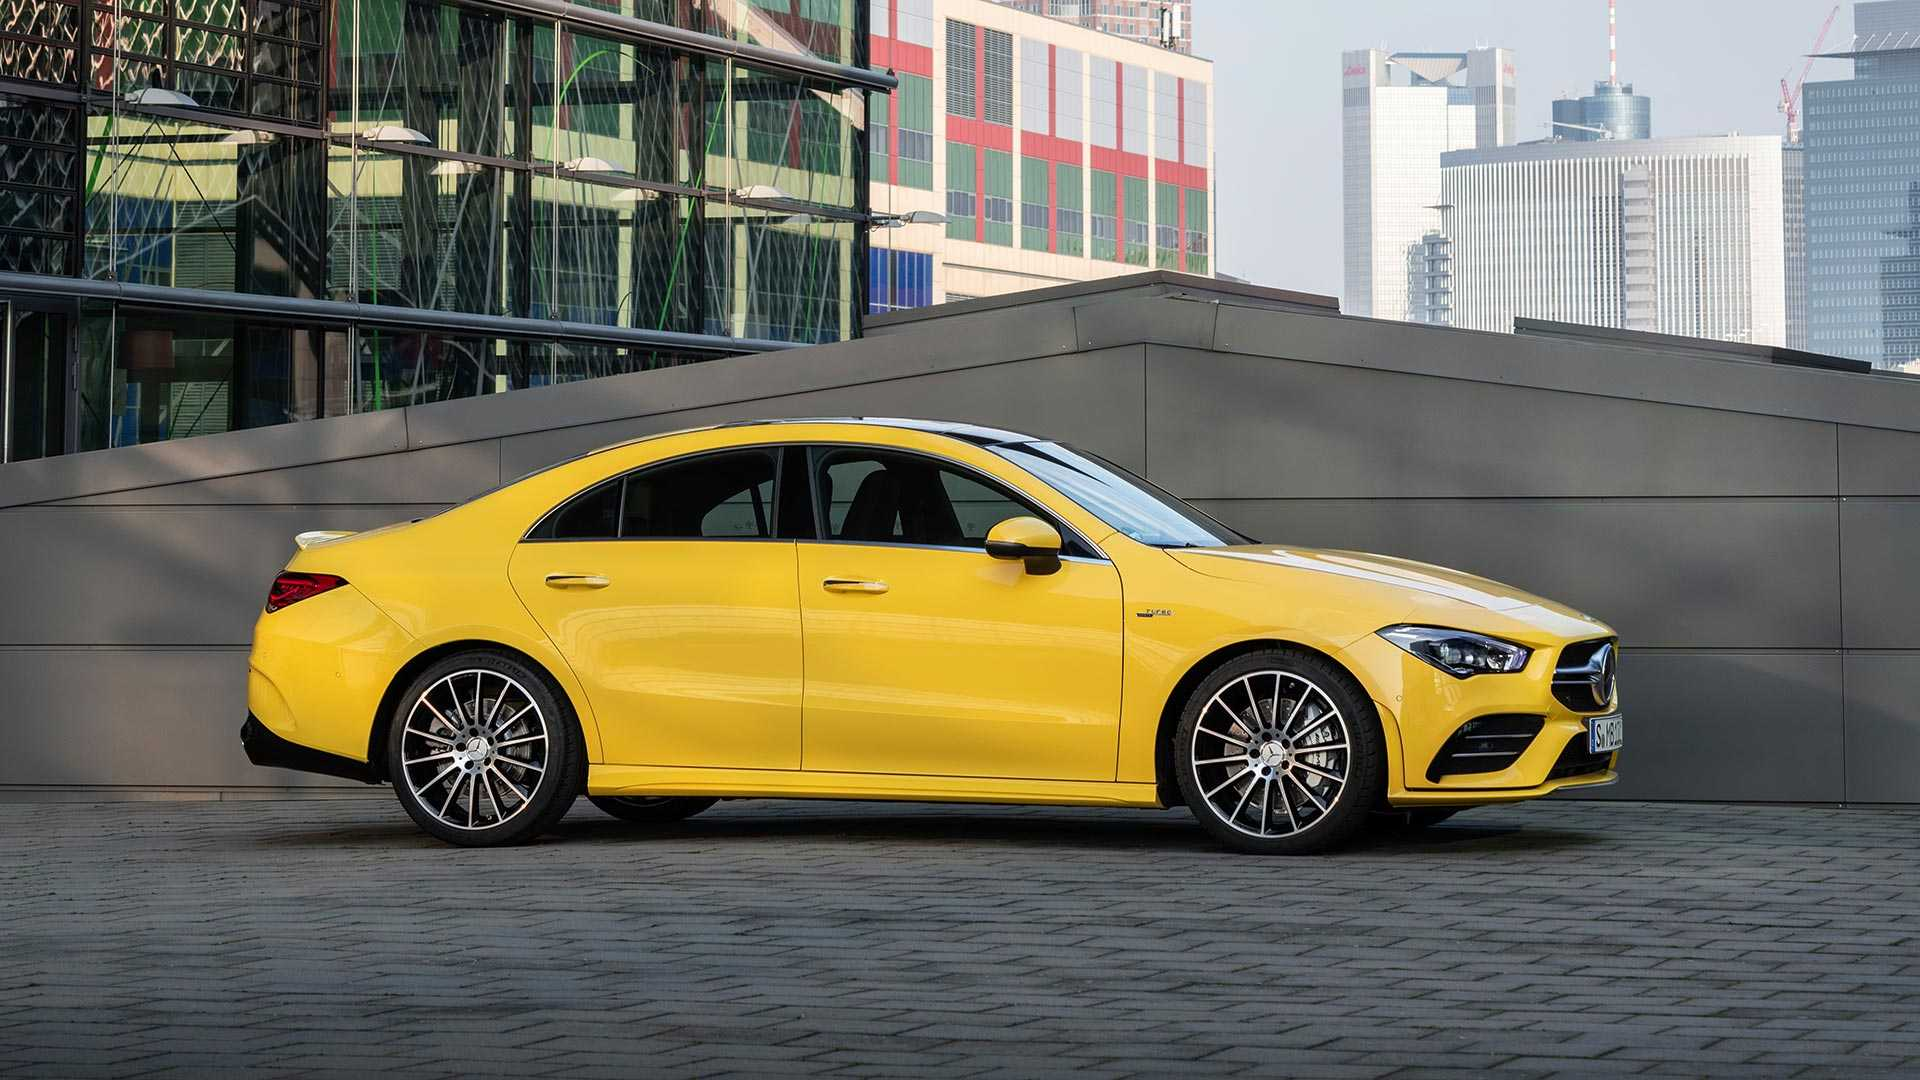 2020 Mercedes-AMG CLA 35 4MATIC (Color: Sun Yellow) Front Three-Quarter Wallpapers (13)